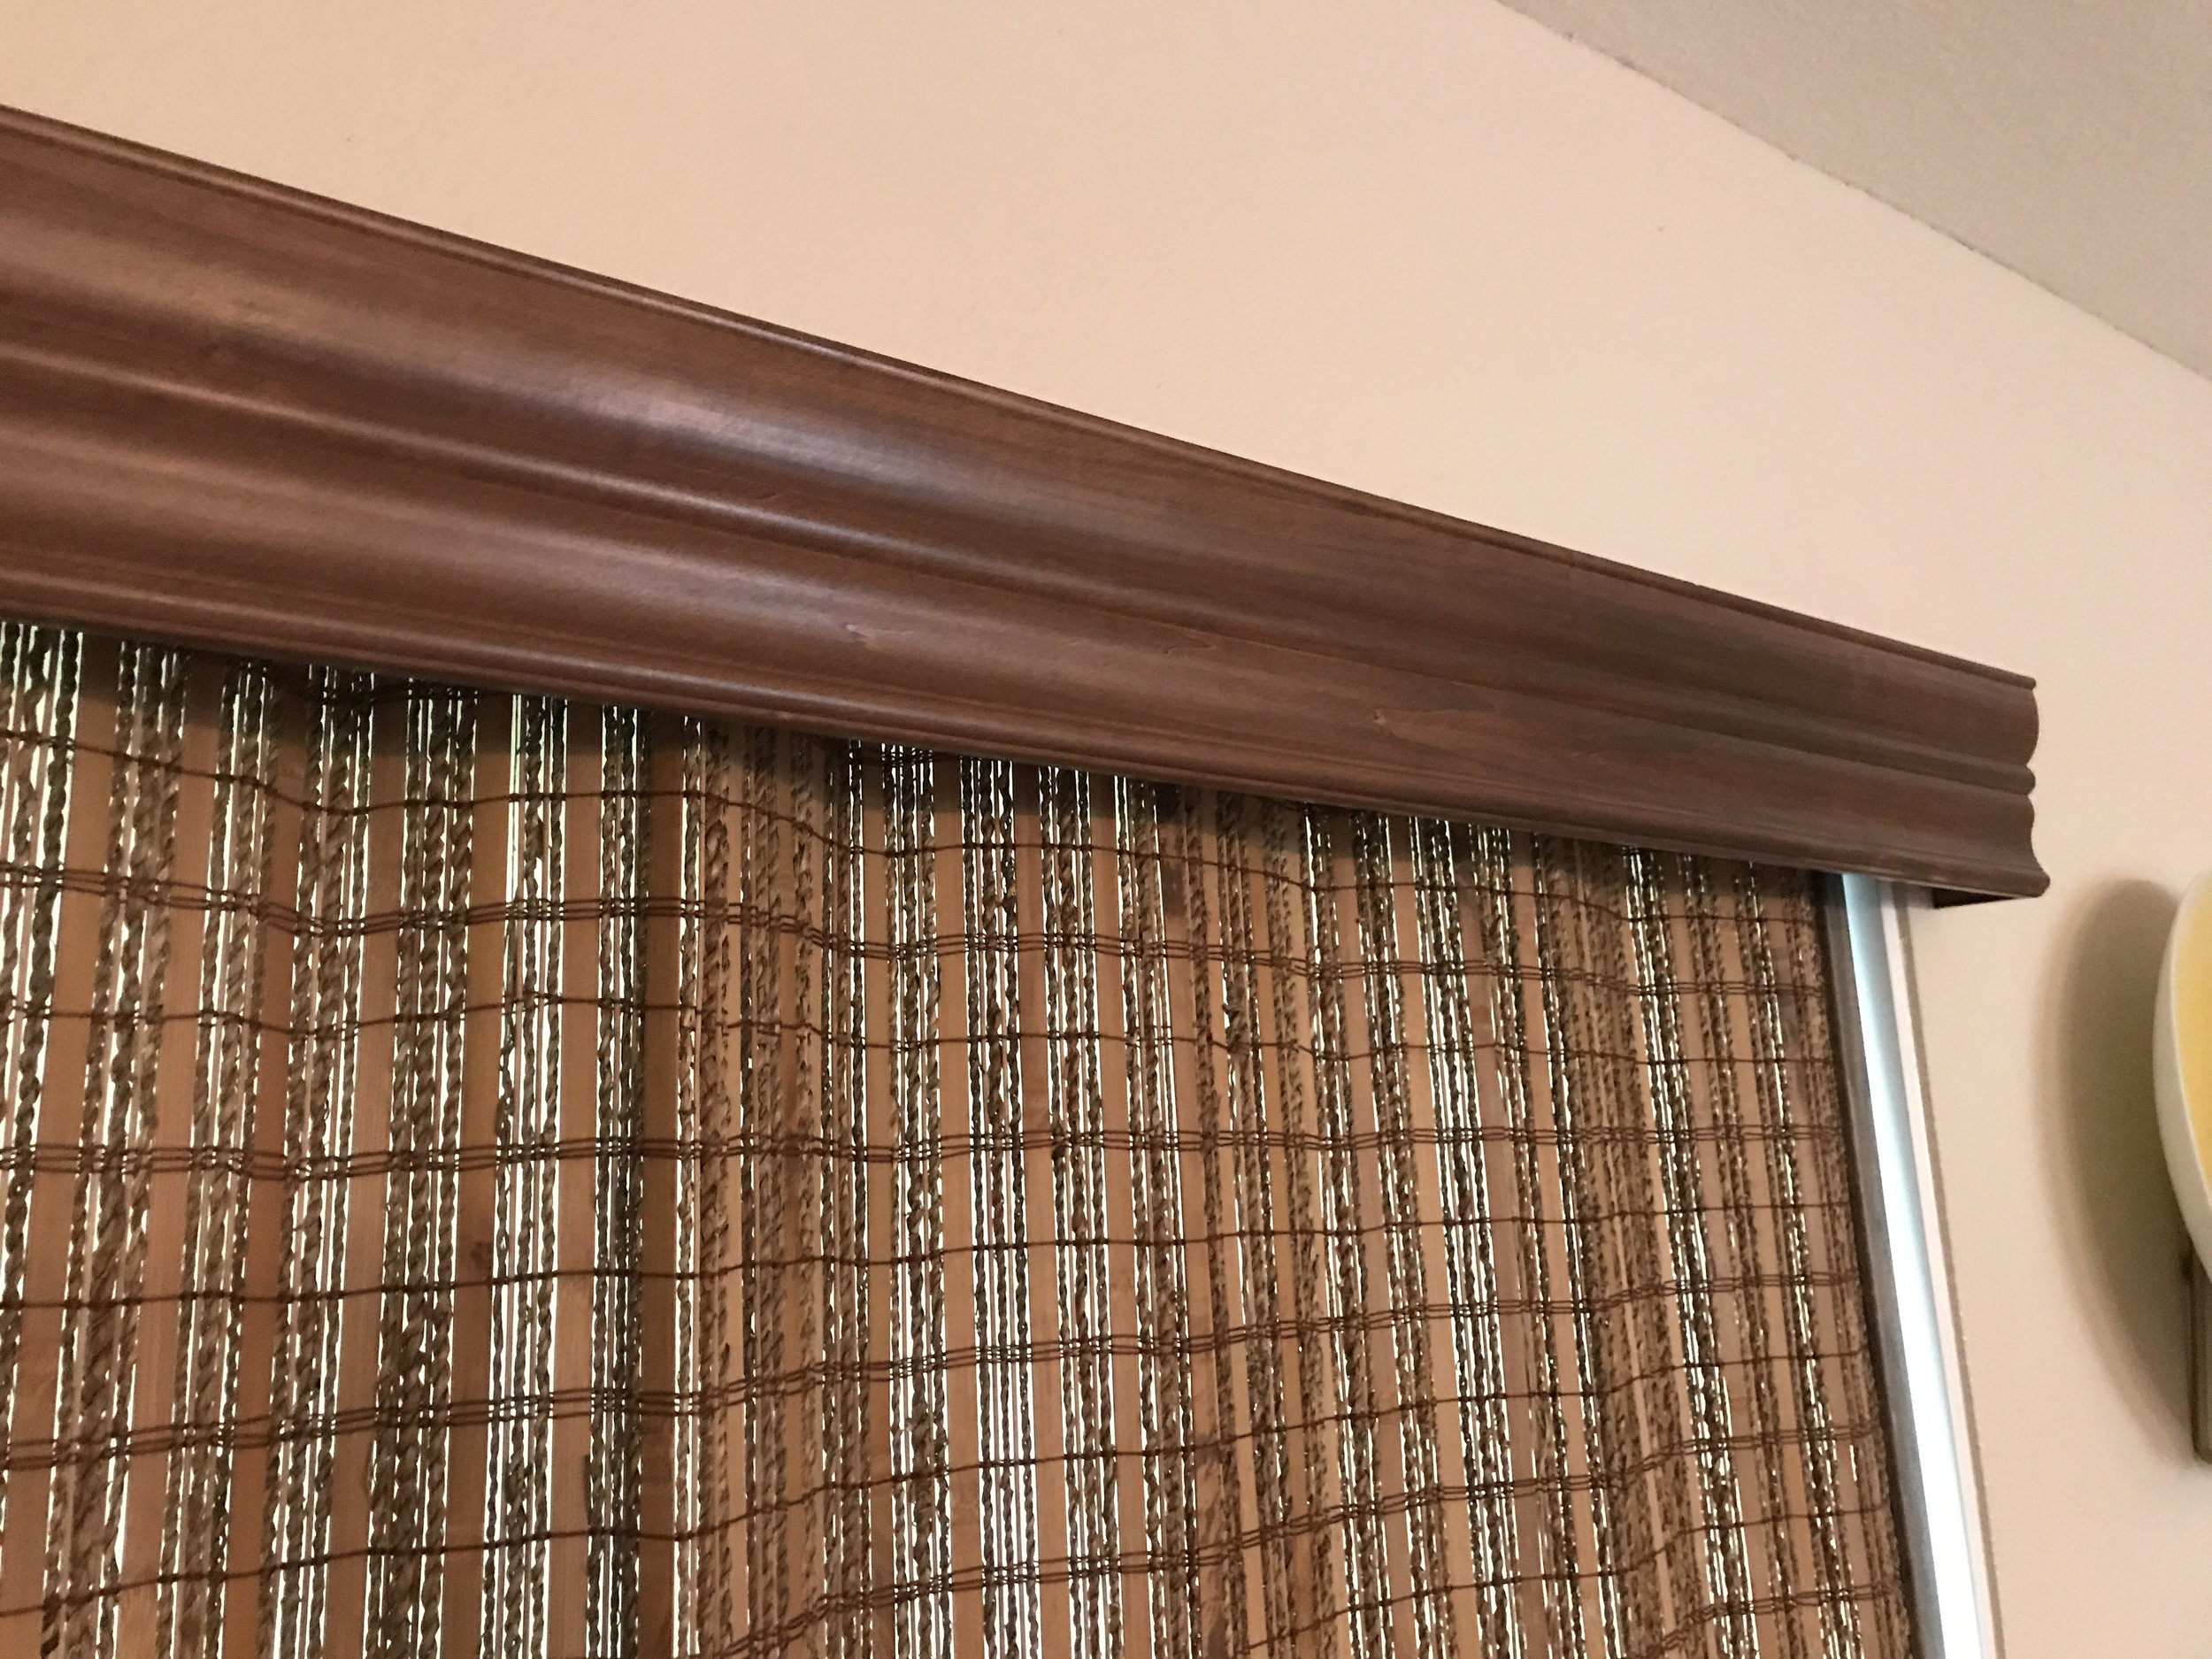 Custom Crowne Valance Over Woven Drapery